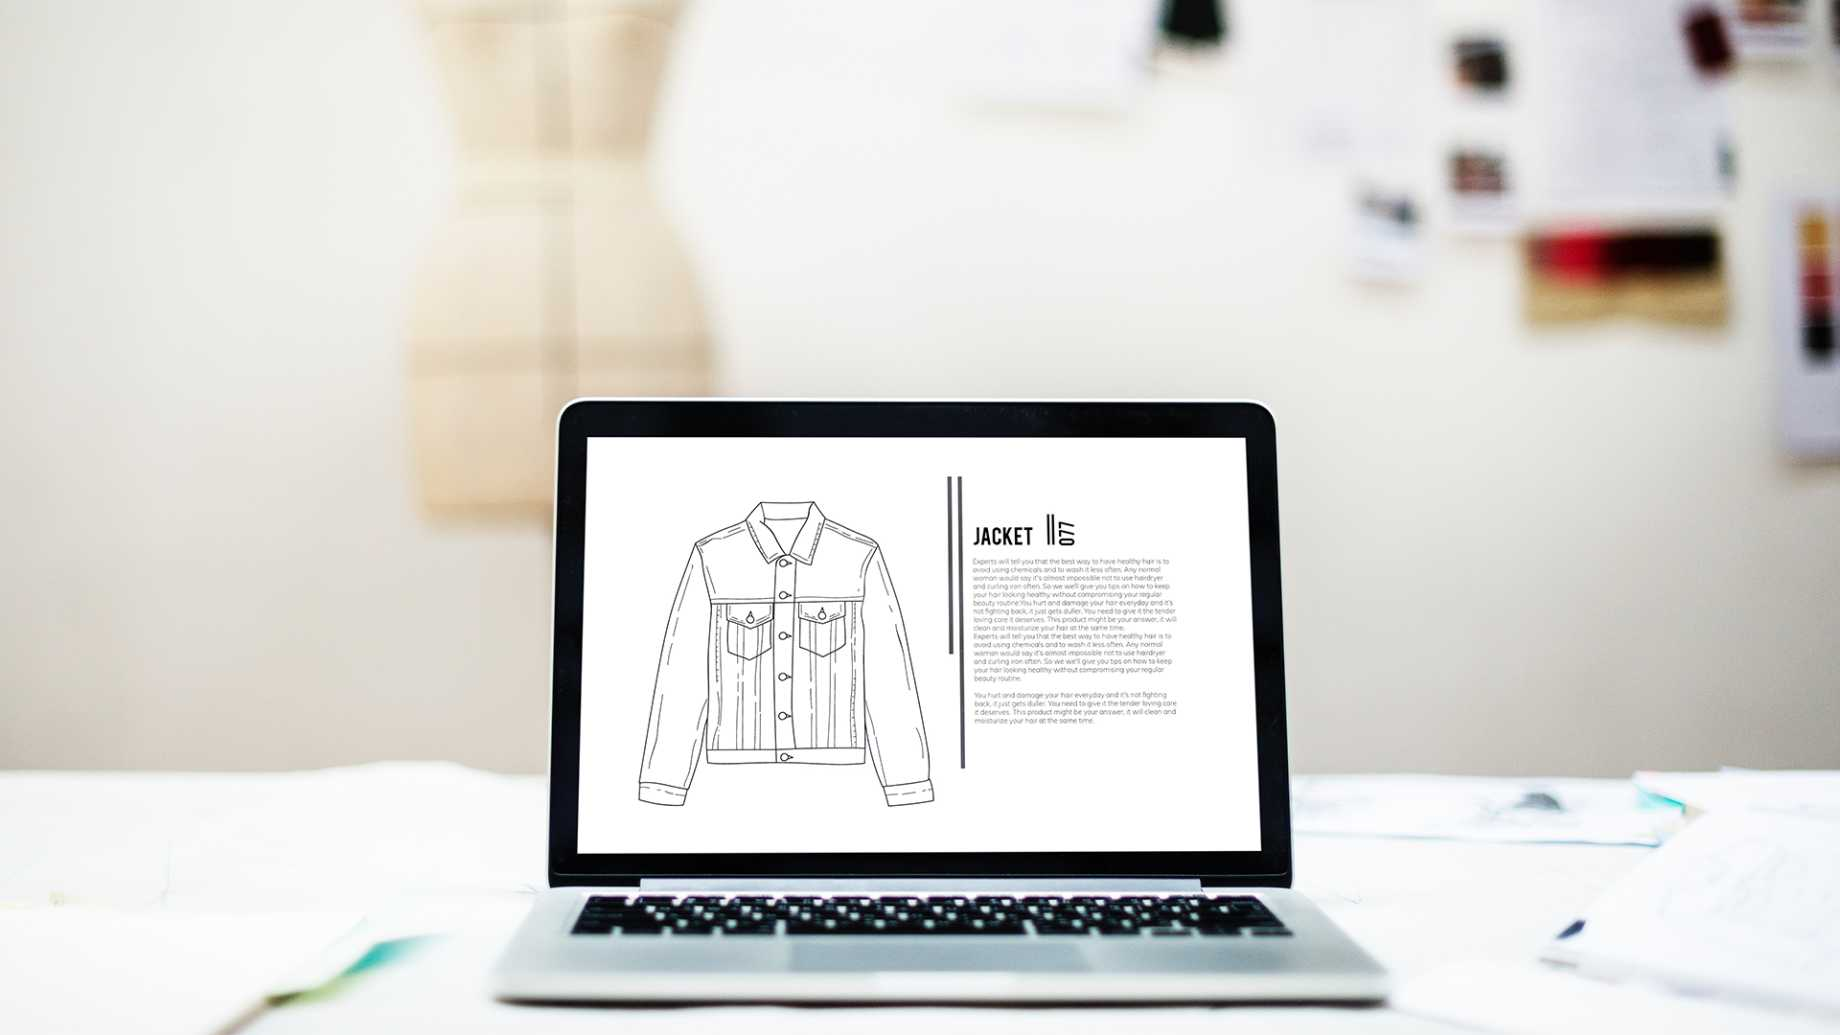 5 Ways Fashion and Lifestyle Brands Are Addressing Transparency